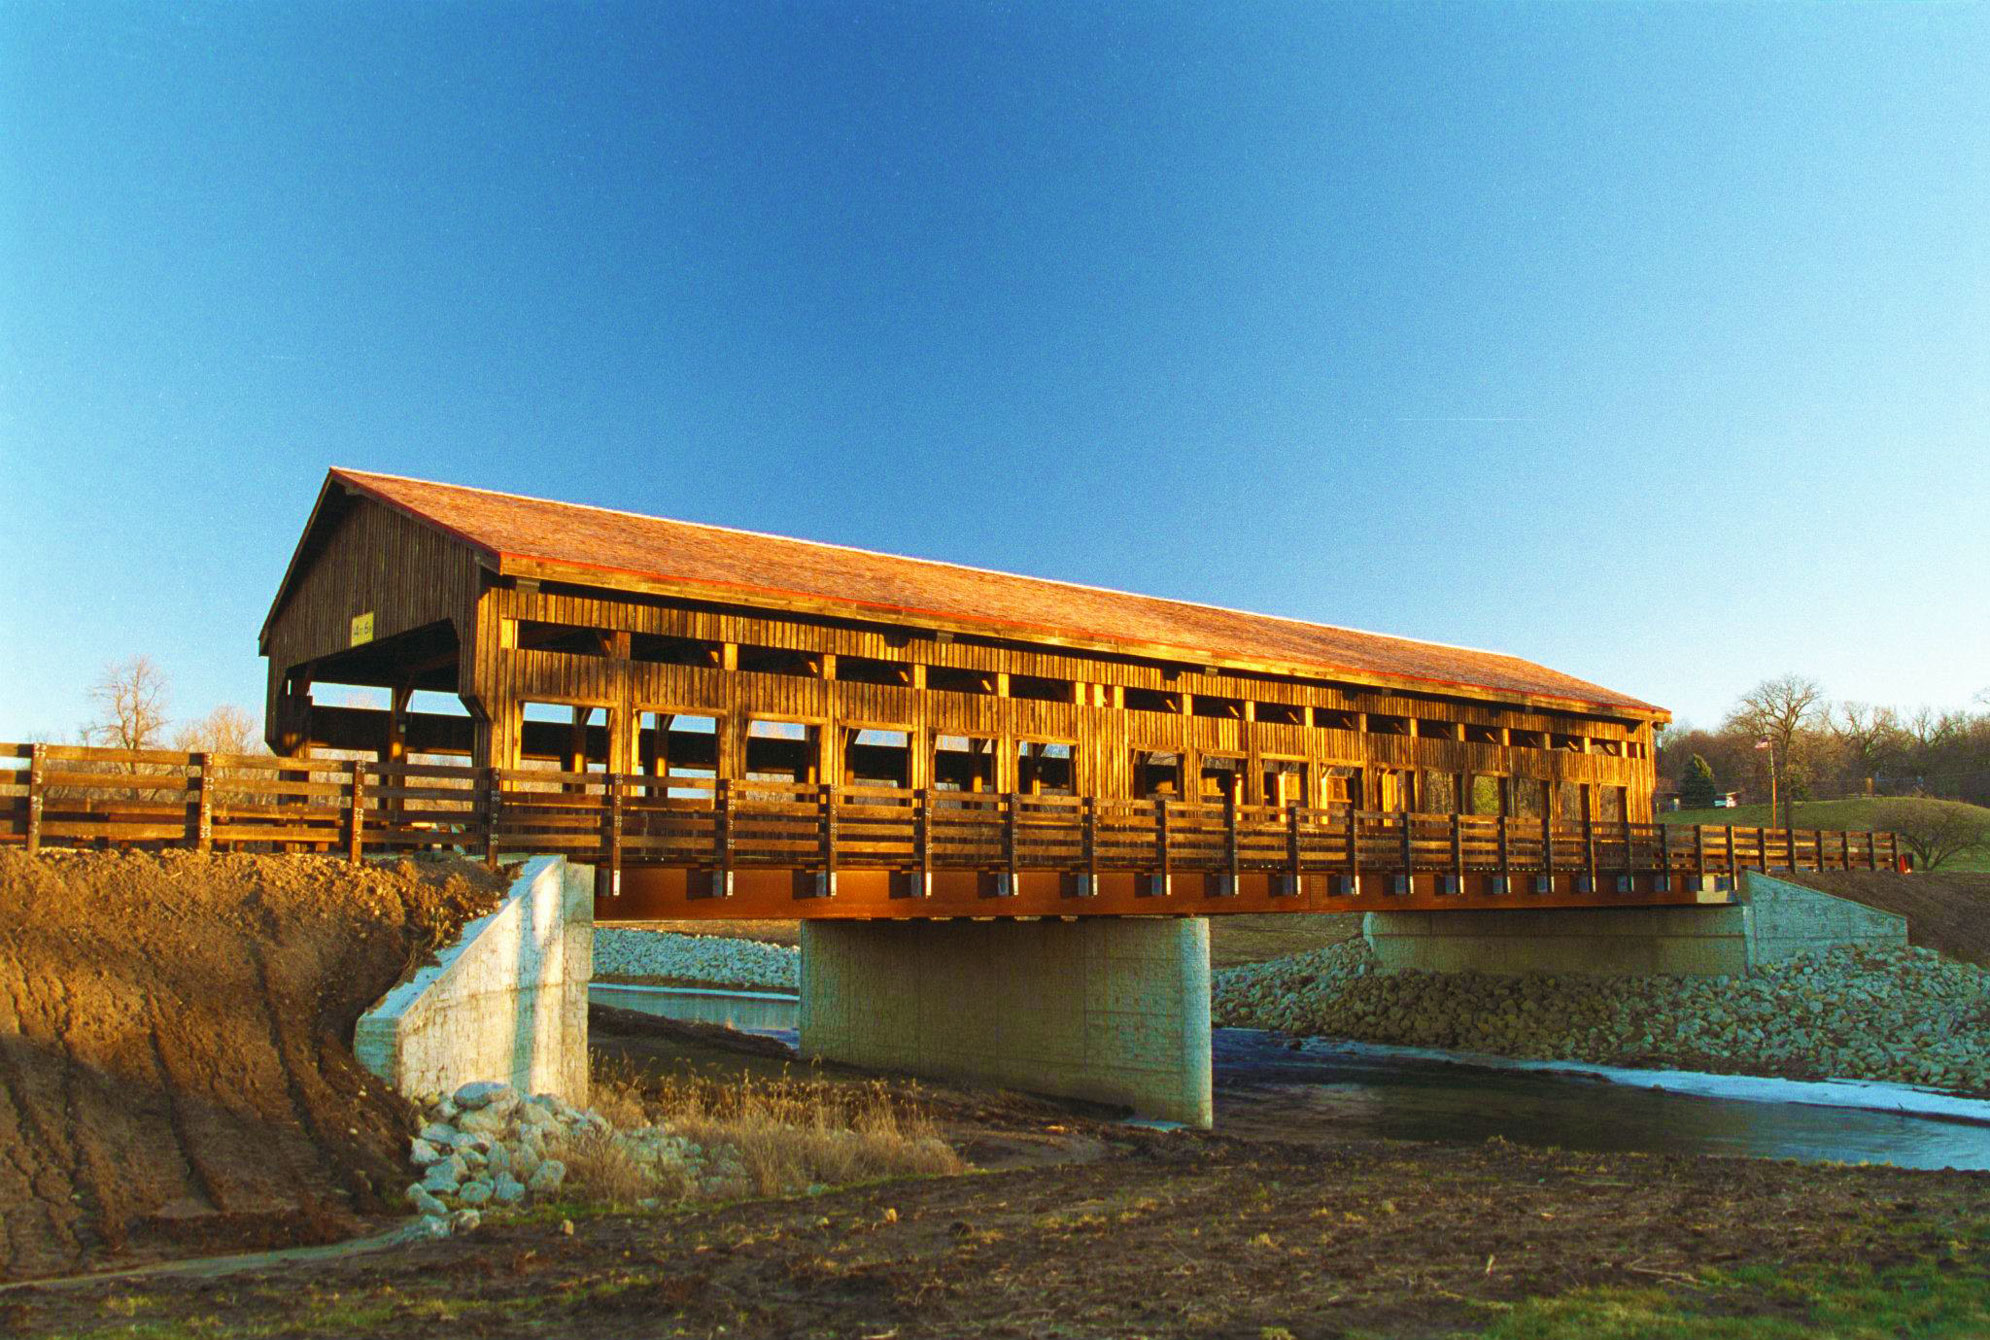 <h1>The Covered Bridge of Whiteside County</h1>